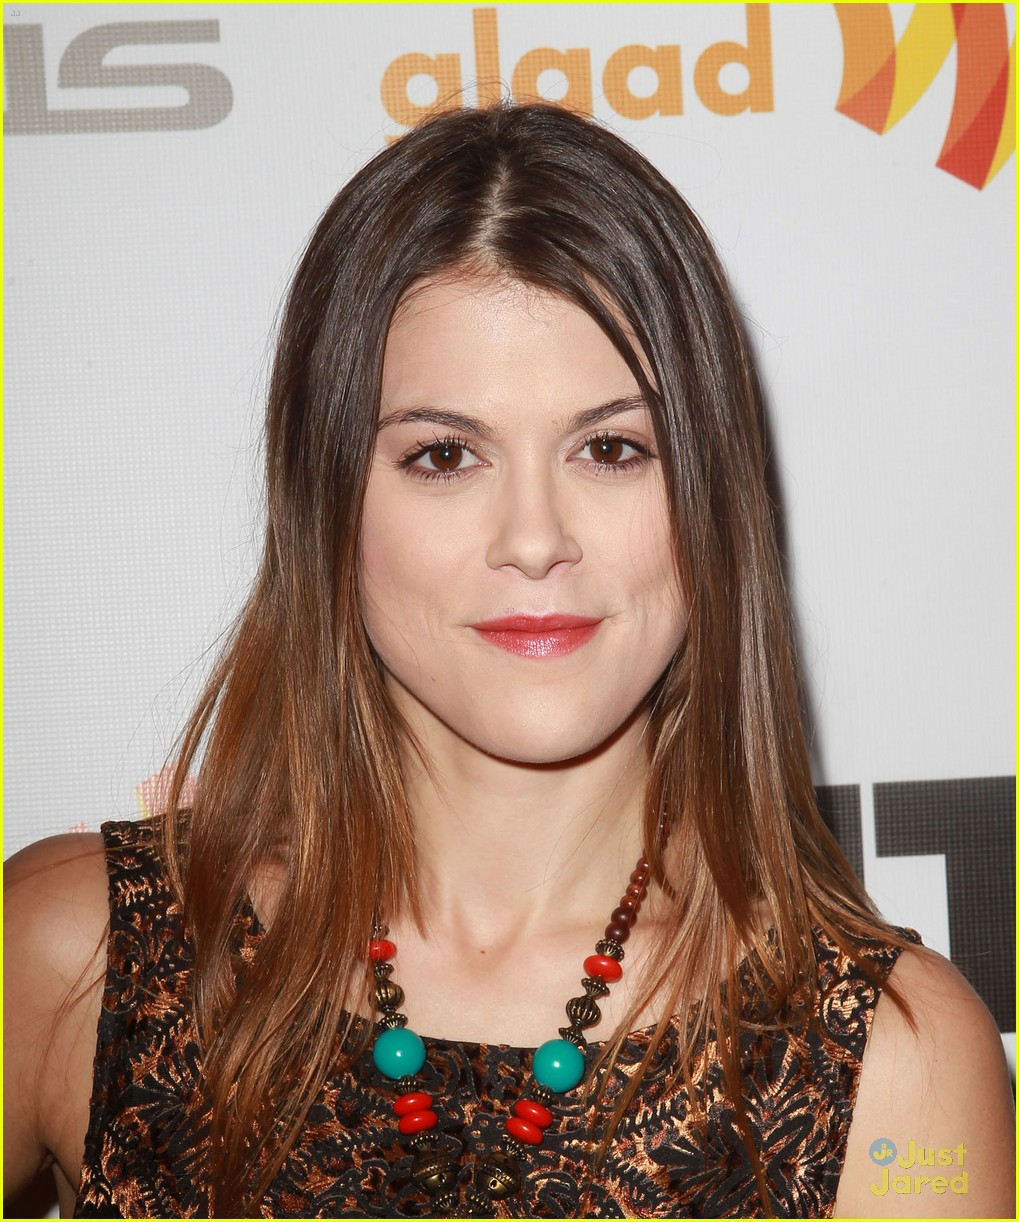 lindsey shaw lifetime movielindsey shaw 2015, lindsey shaw age, lindsey shaw movies, lindsey shaw instagram, lindsey shaw pll, lindsey shaw twitter, lindsey shaw and devon werkheiser, lindsey shaw scream queens, lindsey shaw usf, lindsey shaw snapchat, lindsey shaw relationship, lindsey shaw siblings, lindsey shaw lifetime movie, lindsey shaw fansite, lindsey shaw sister, lindsey shaw love me, lindsey shaw bio, lindsey shaw linkedin, lindsey shaw ned's declassified